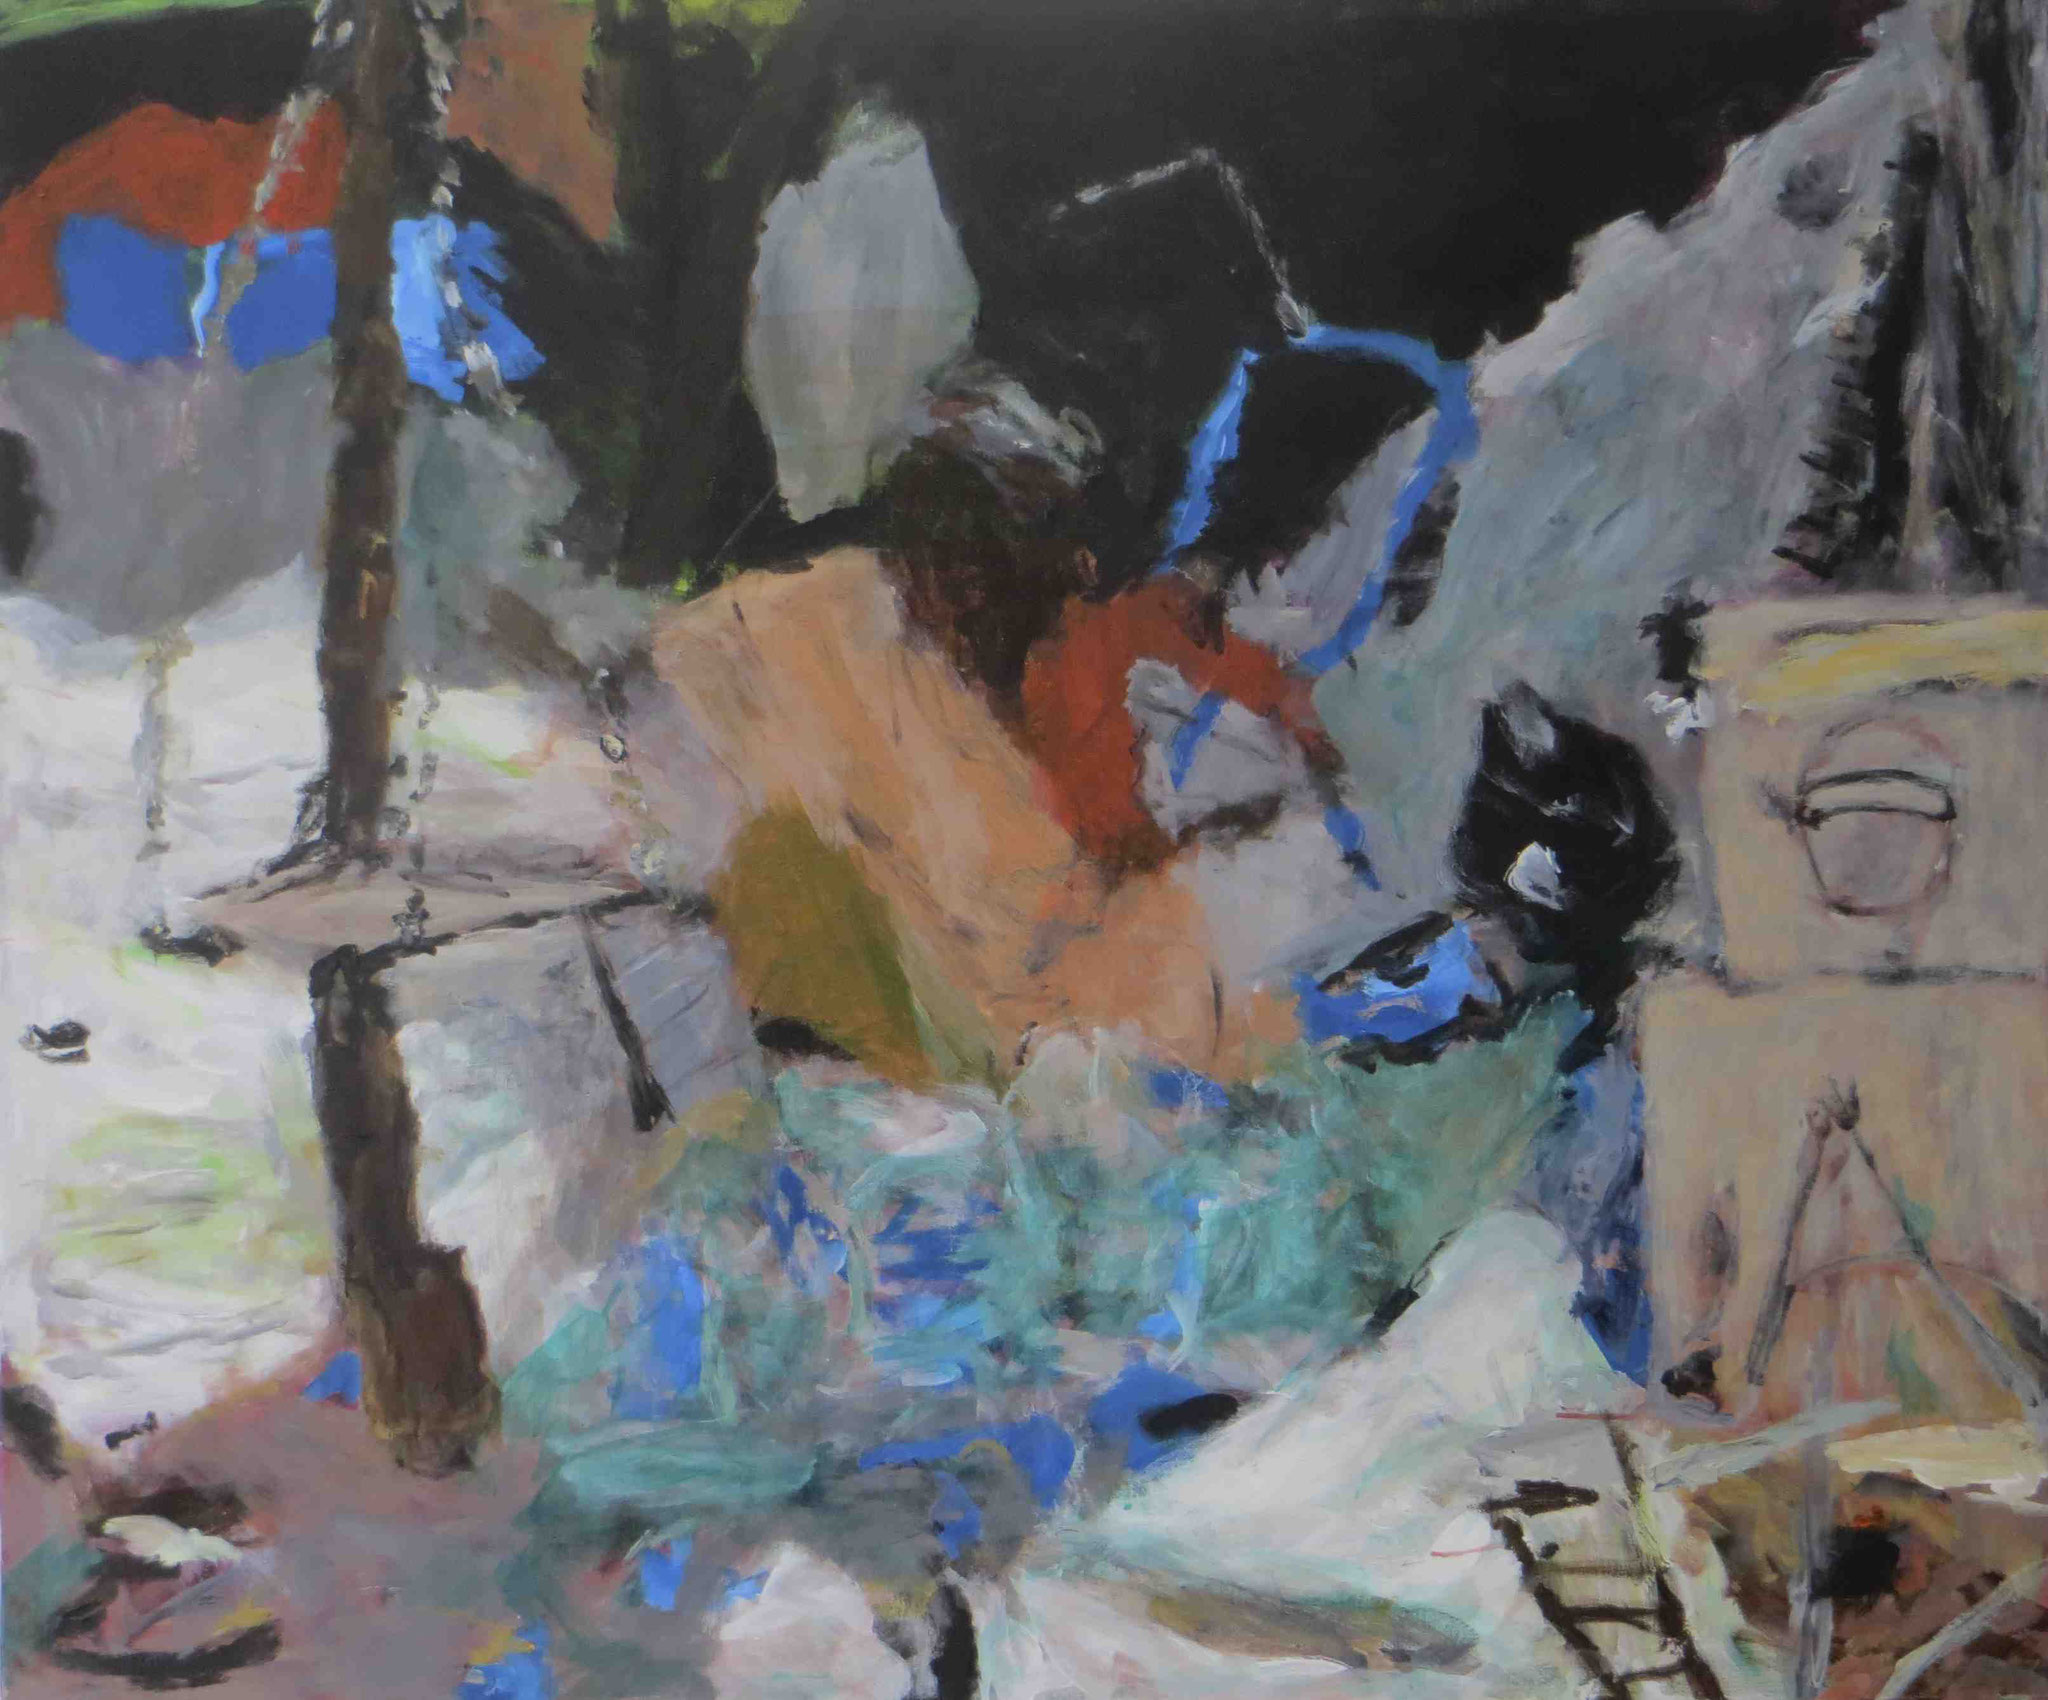 Working Time, Puri, Acryl auf Lwd, 100x120, 2012